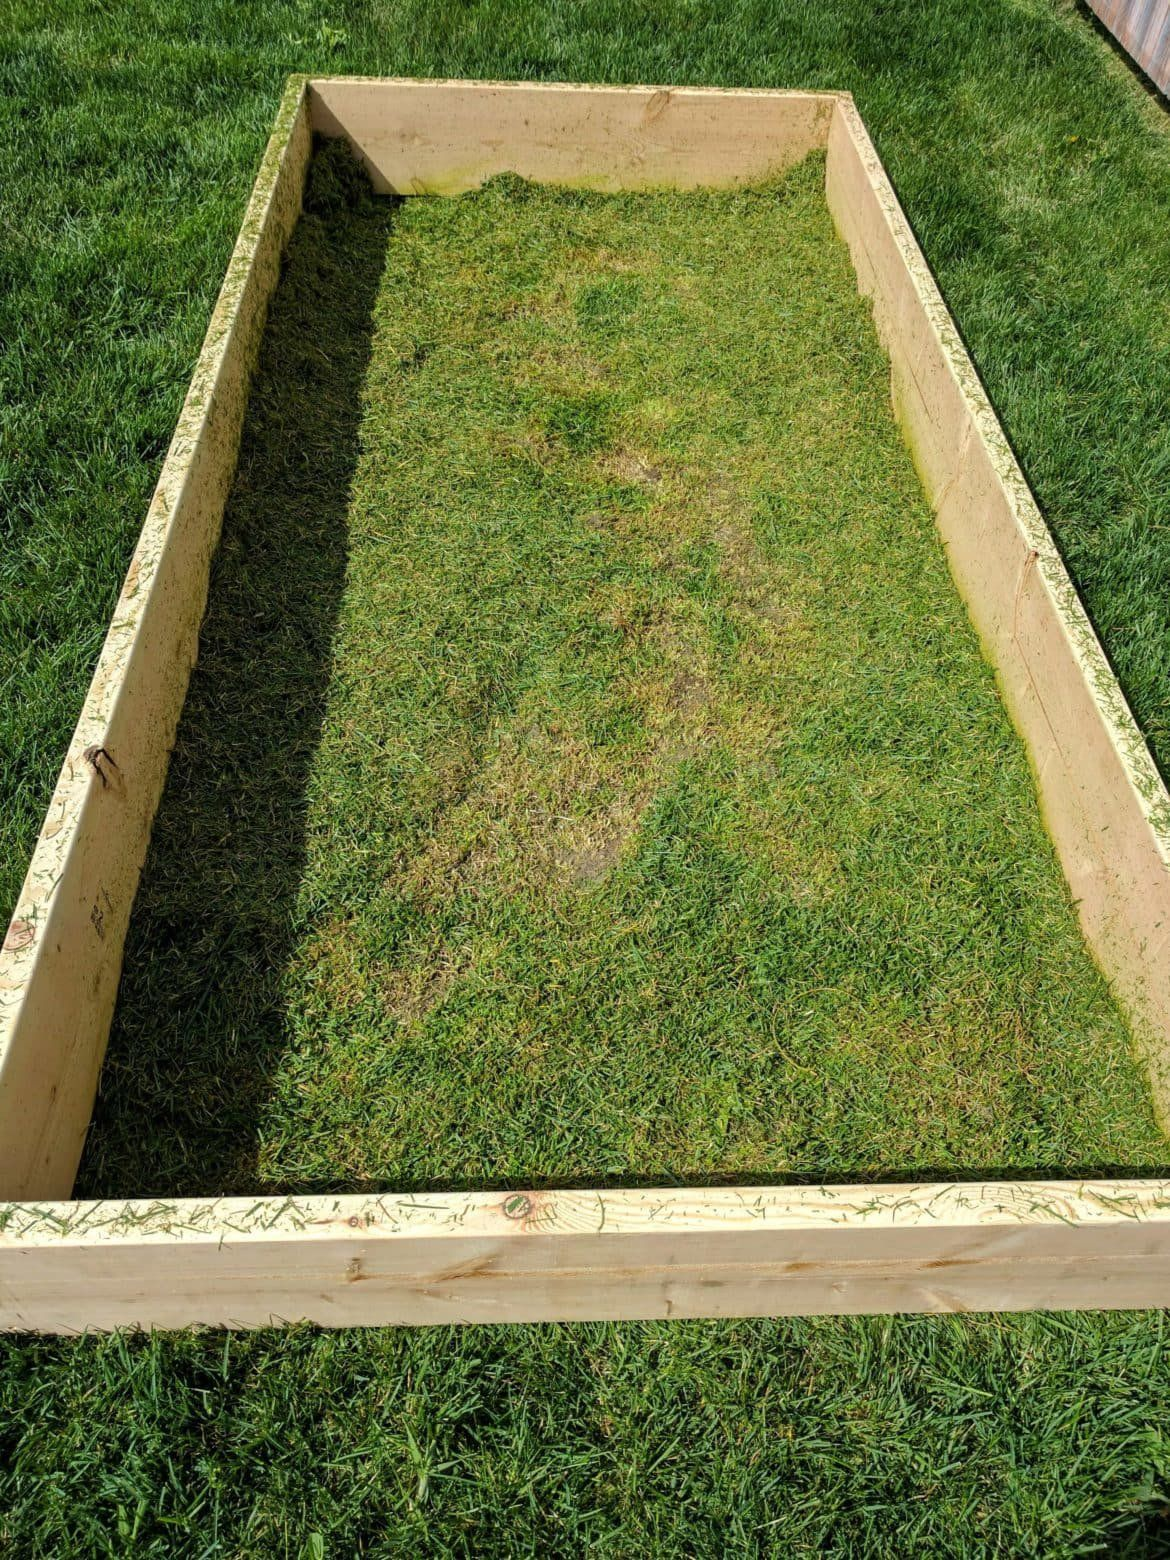 How To Build Raised Garden Beds An Easy Diy Design In 2020 Building A Raised Garden Diy Raised Garden Raised Garden Beds Diy